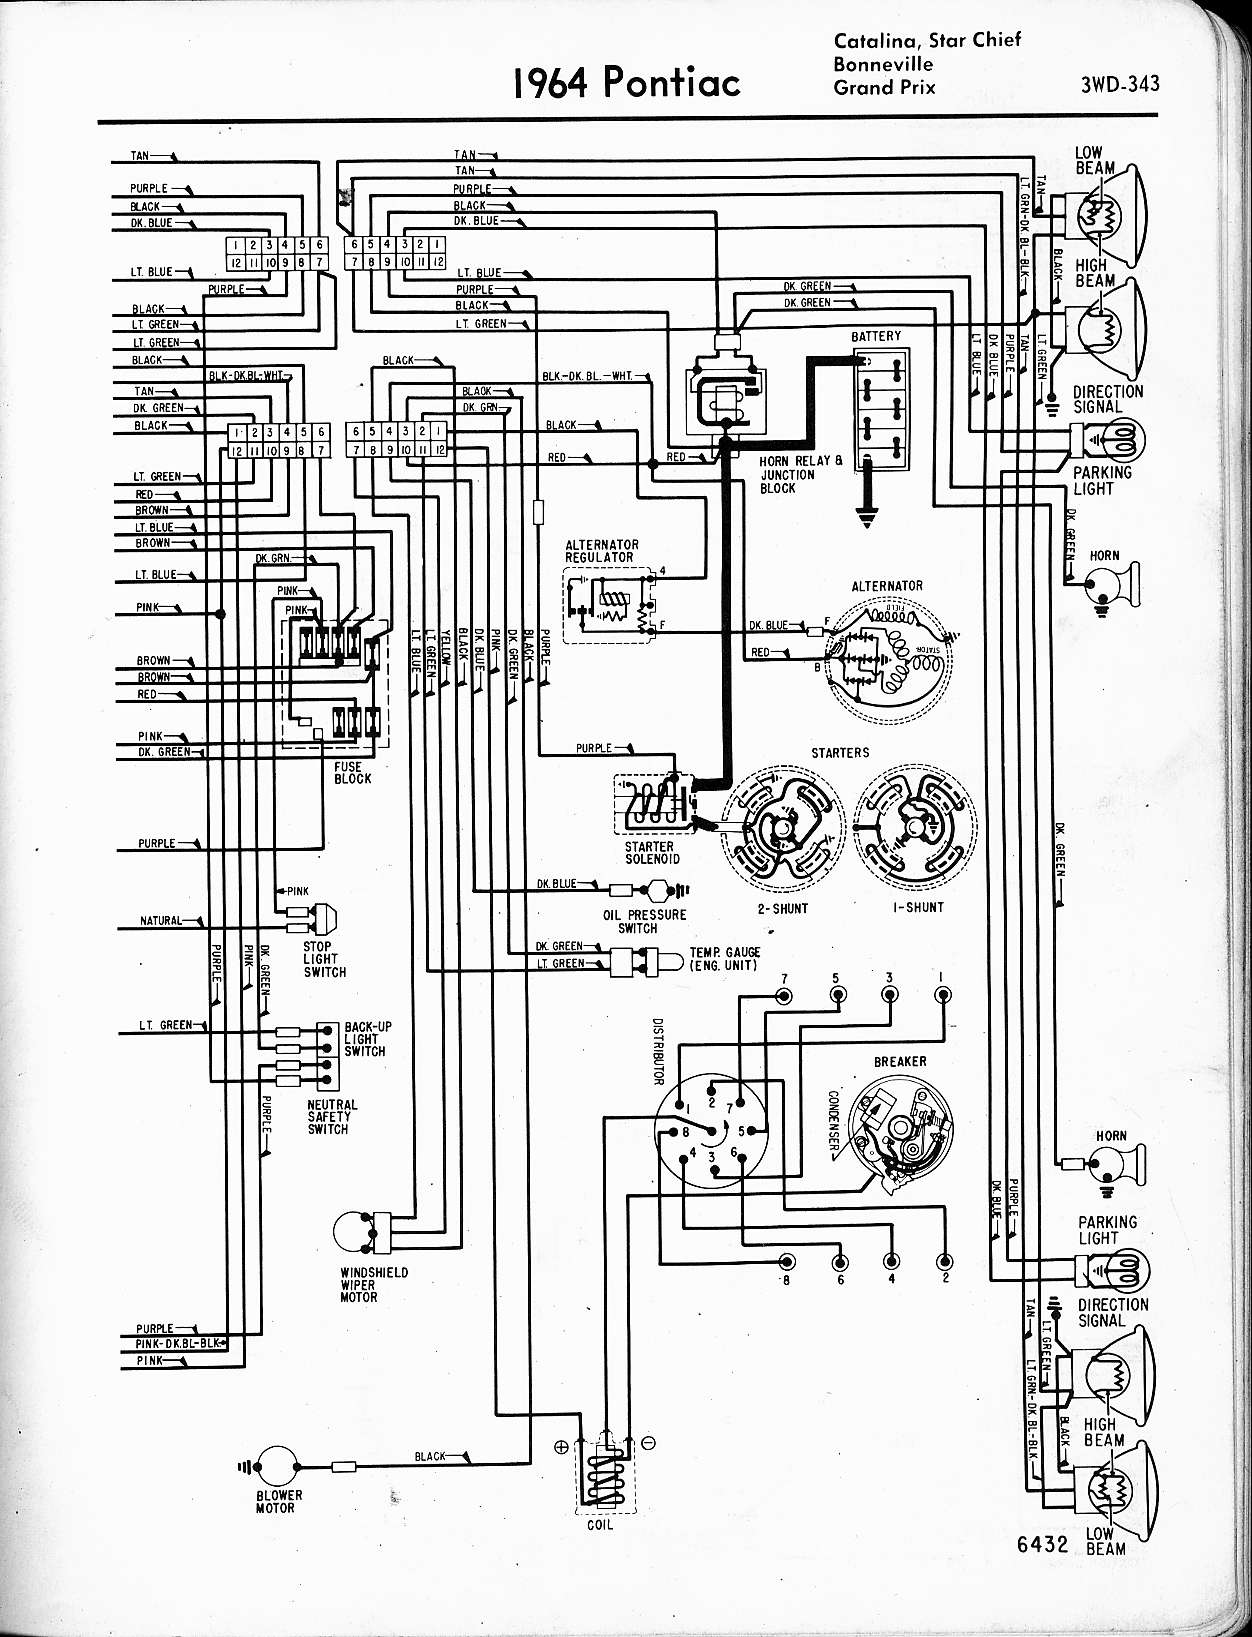 Wiring Diagram For Pontiac Bonneville Opinions About 1997 Transport Radio Wallace Racing Diagrams Rh Wallaceracing Com Ssei 1996